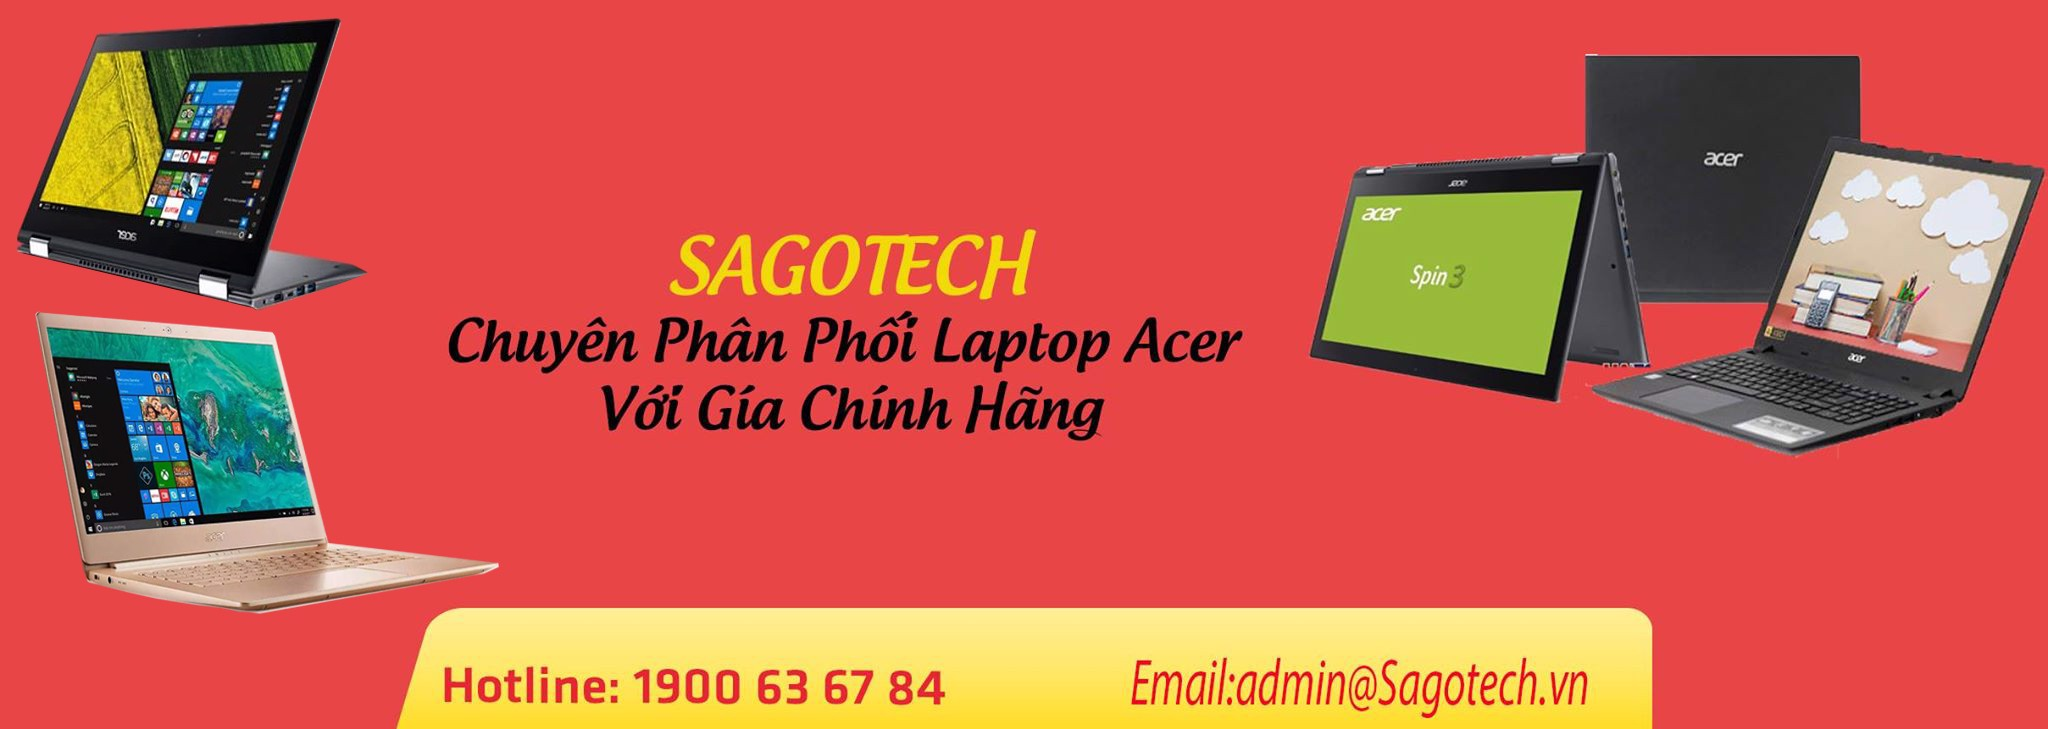 https://file.hstatic.net/1000266242/collection/sagotech-chuyen-laptop-acer_c5305fda74384a37aa9ff838a6df51cd.jpg